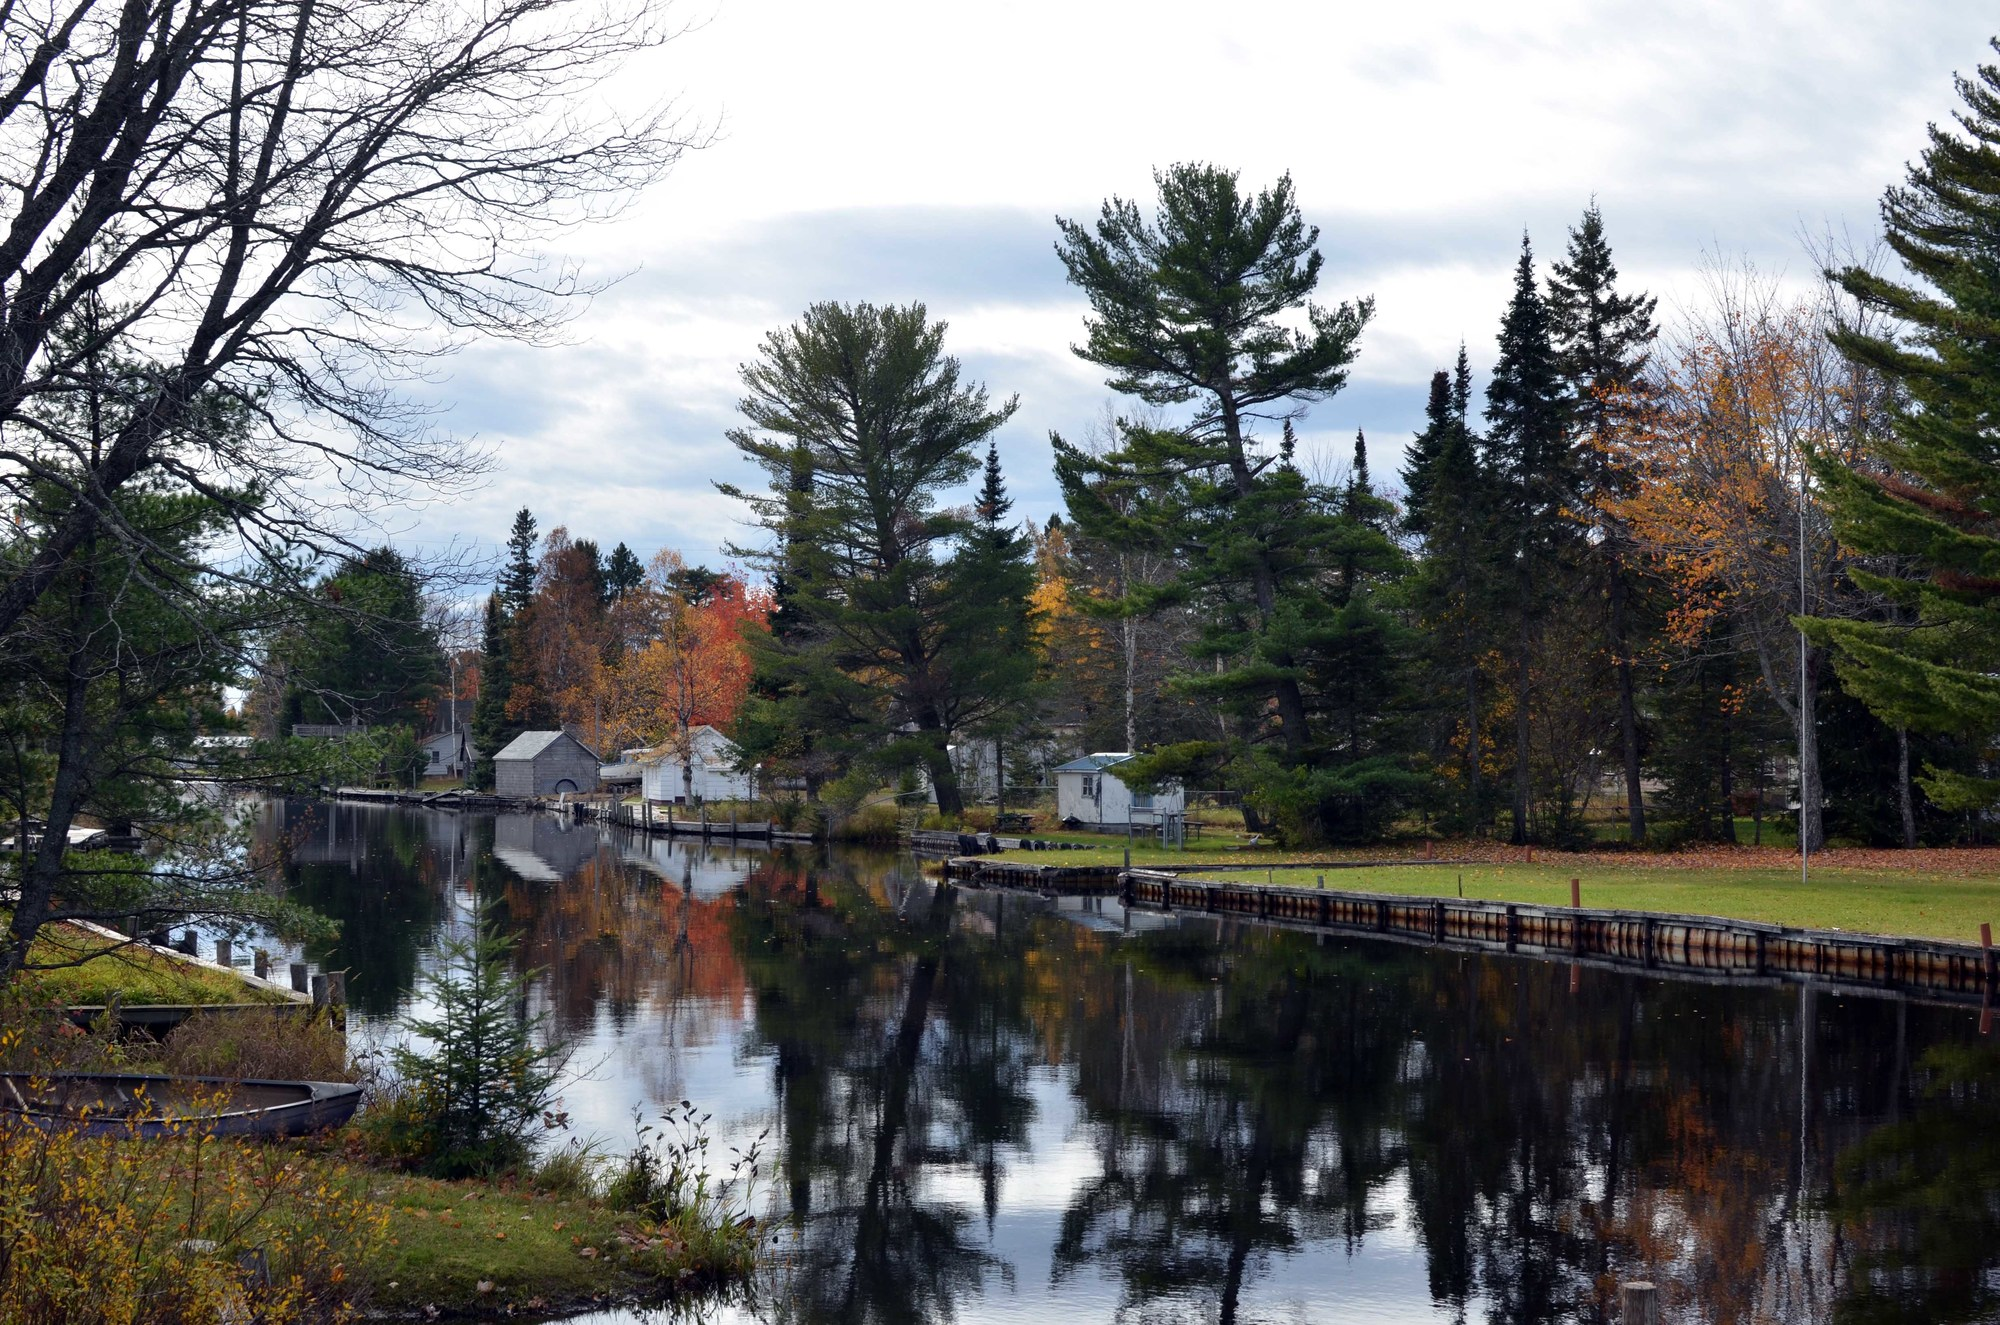 The Big Tamarack River winds slowly toward the Grand Traverse Harbor, past homes, docks and yards.